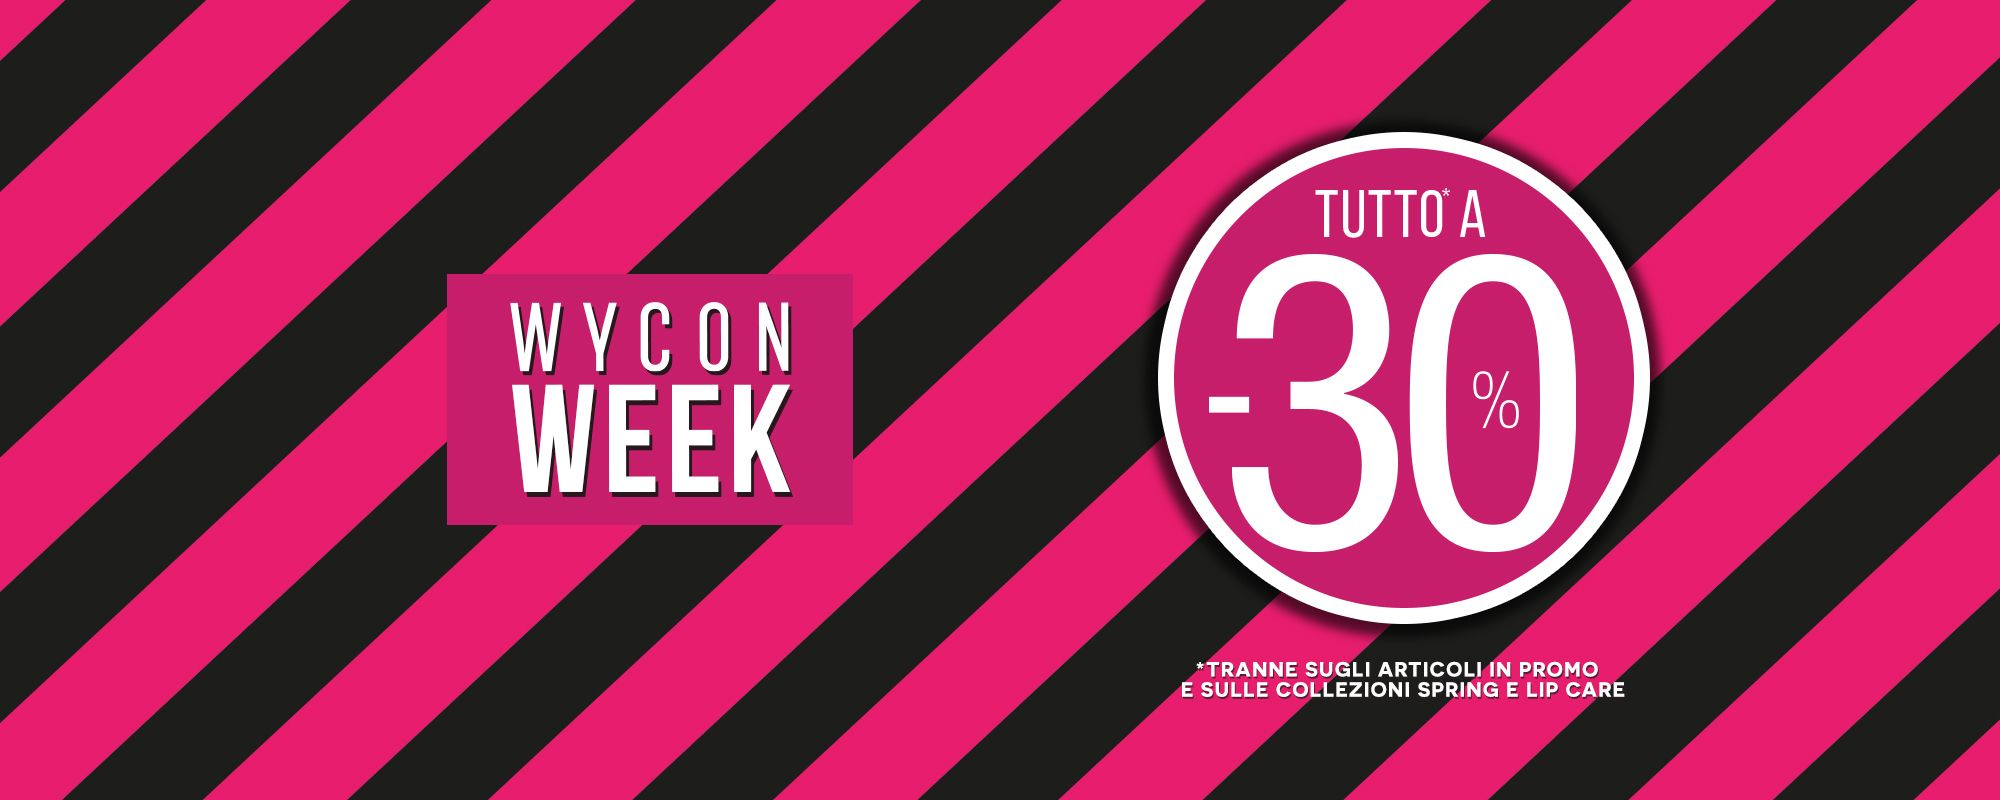 WYCON WEEK